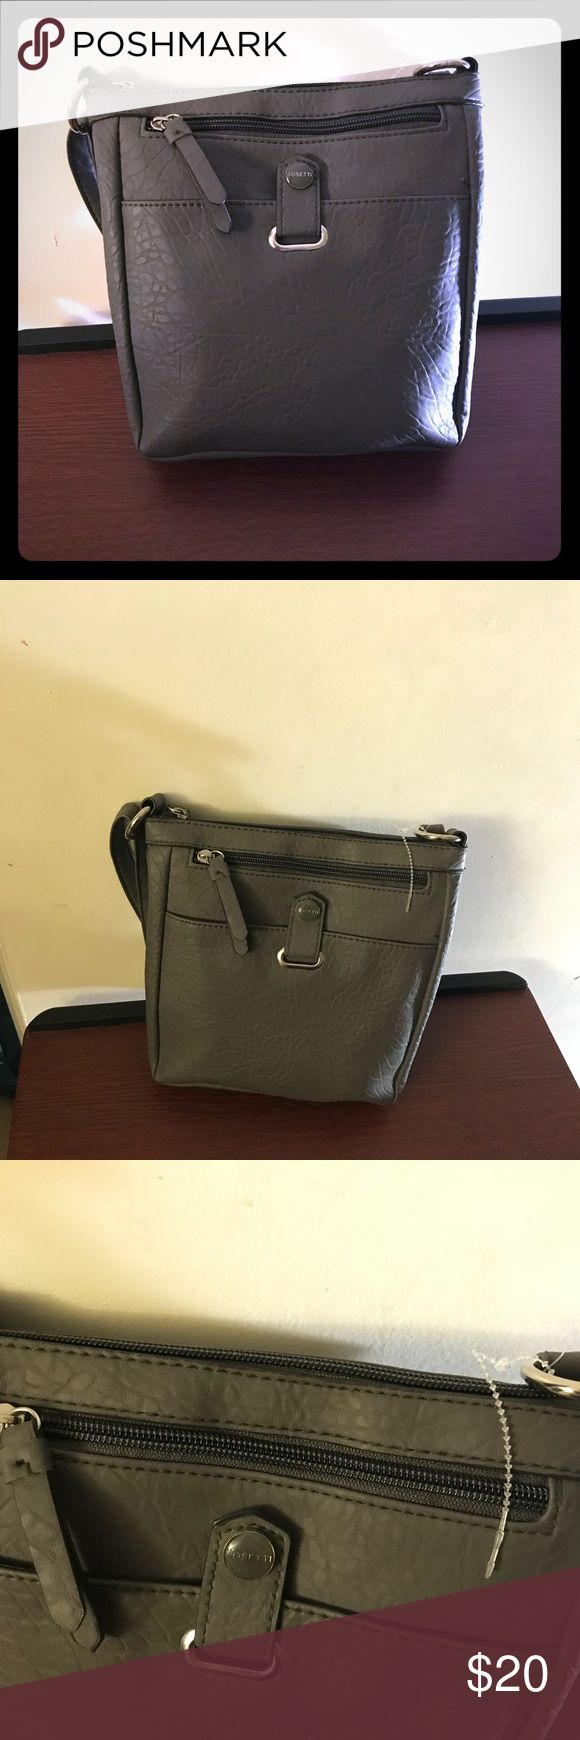 Grey crossbody purse Cute.crossbody purse. New! Please feel free to ask any questions. rossi Bags Crossbody Bags